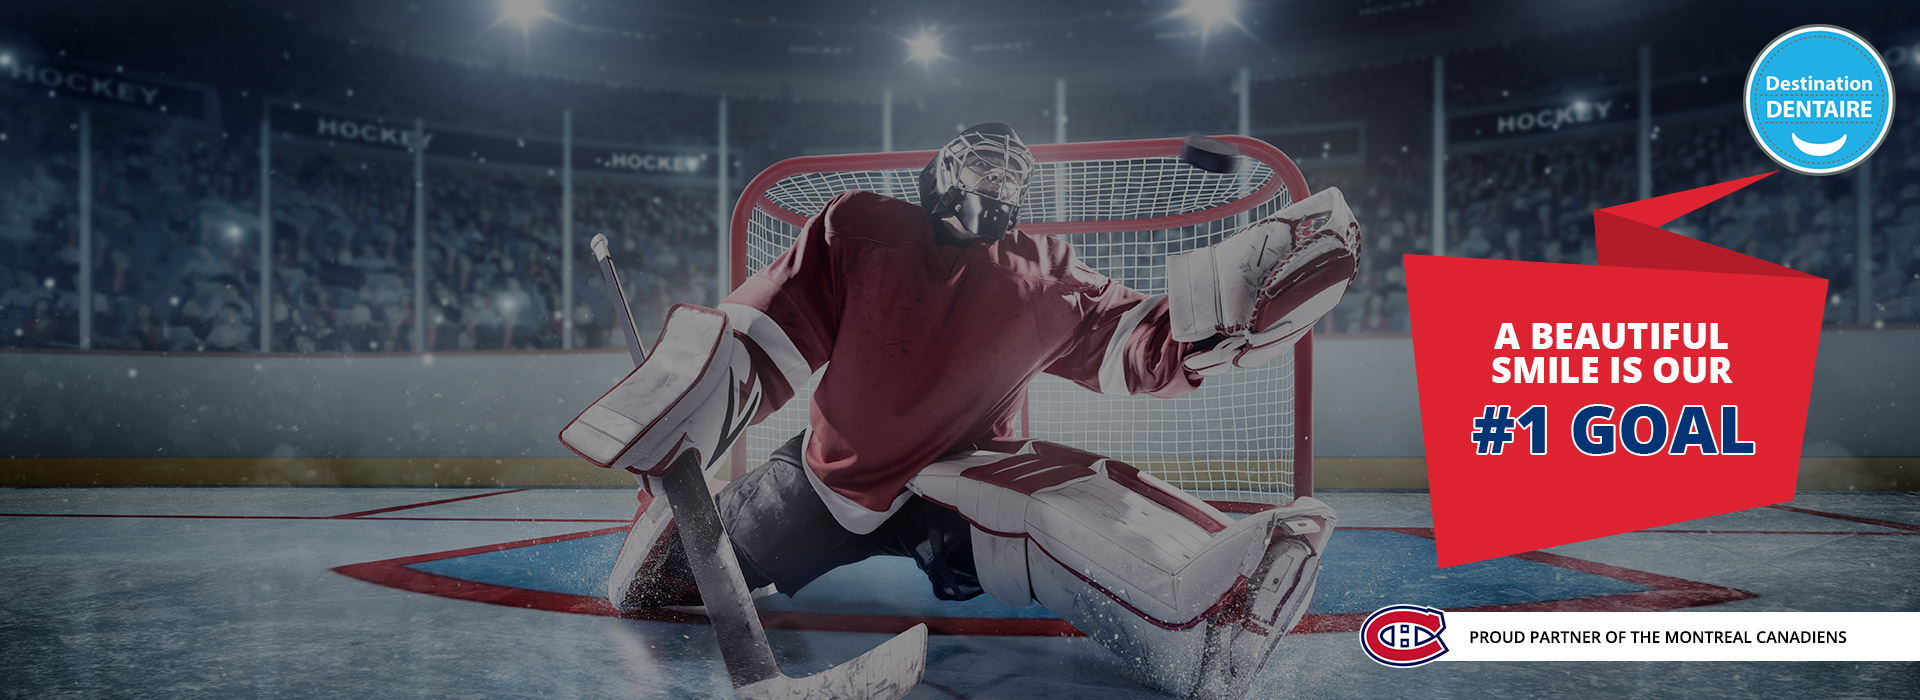 A Montreal Canadiens goalie making a glove save to highlight the partnership with Destination Dentaire.